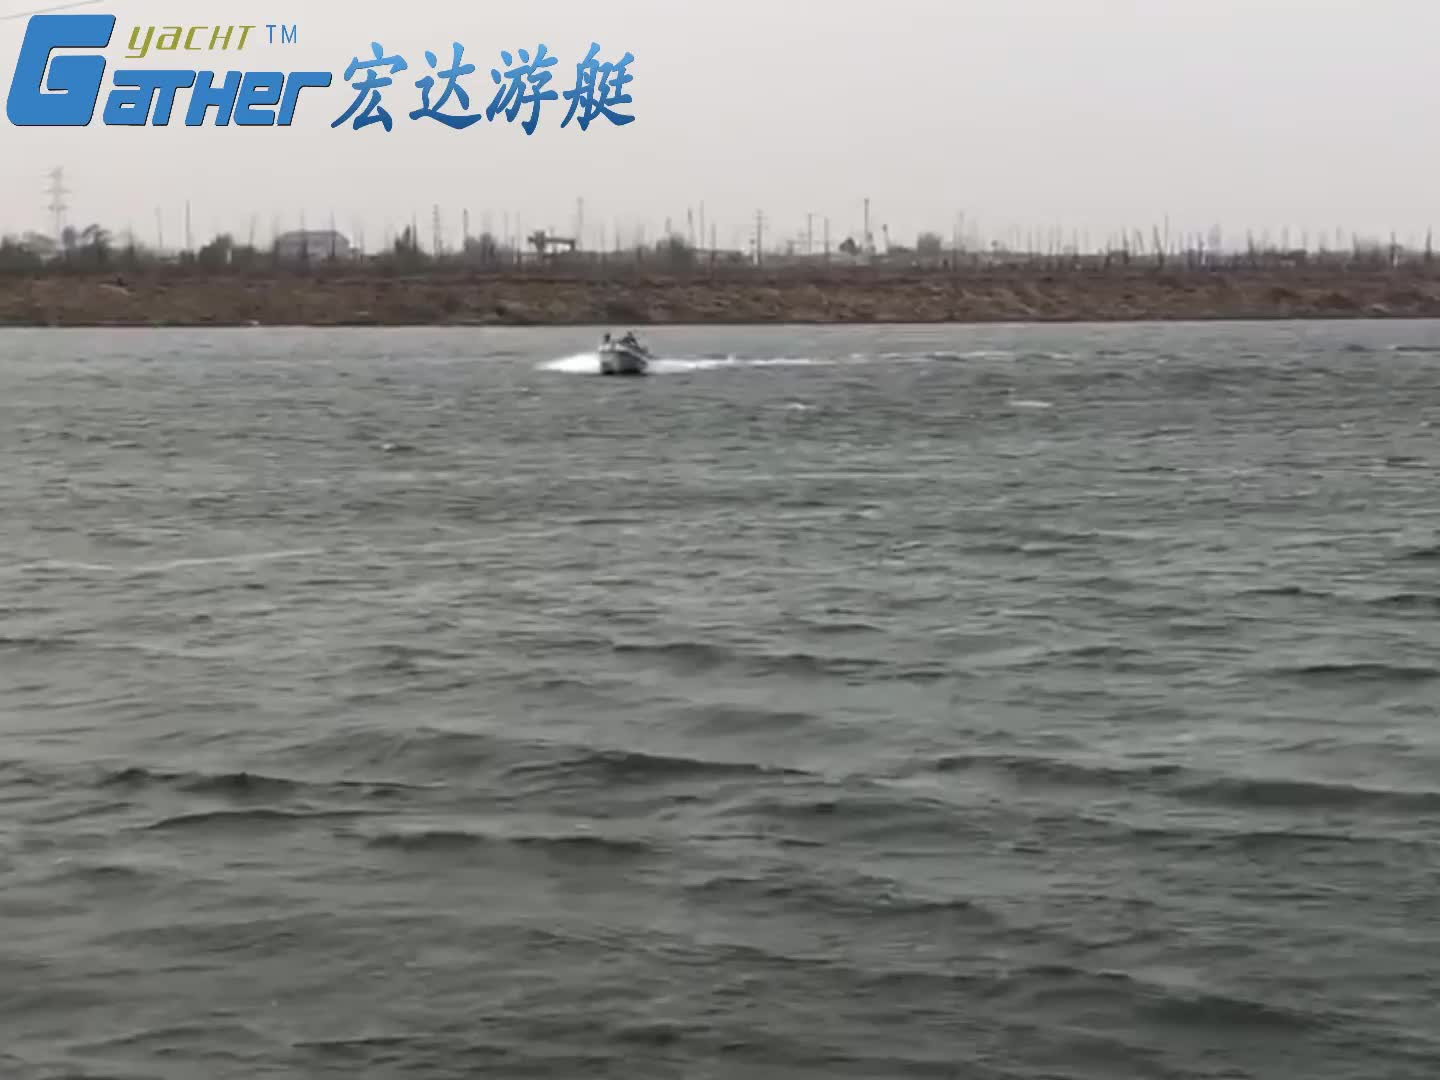 Gather China wholesale made in china fiberglass fishing boat